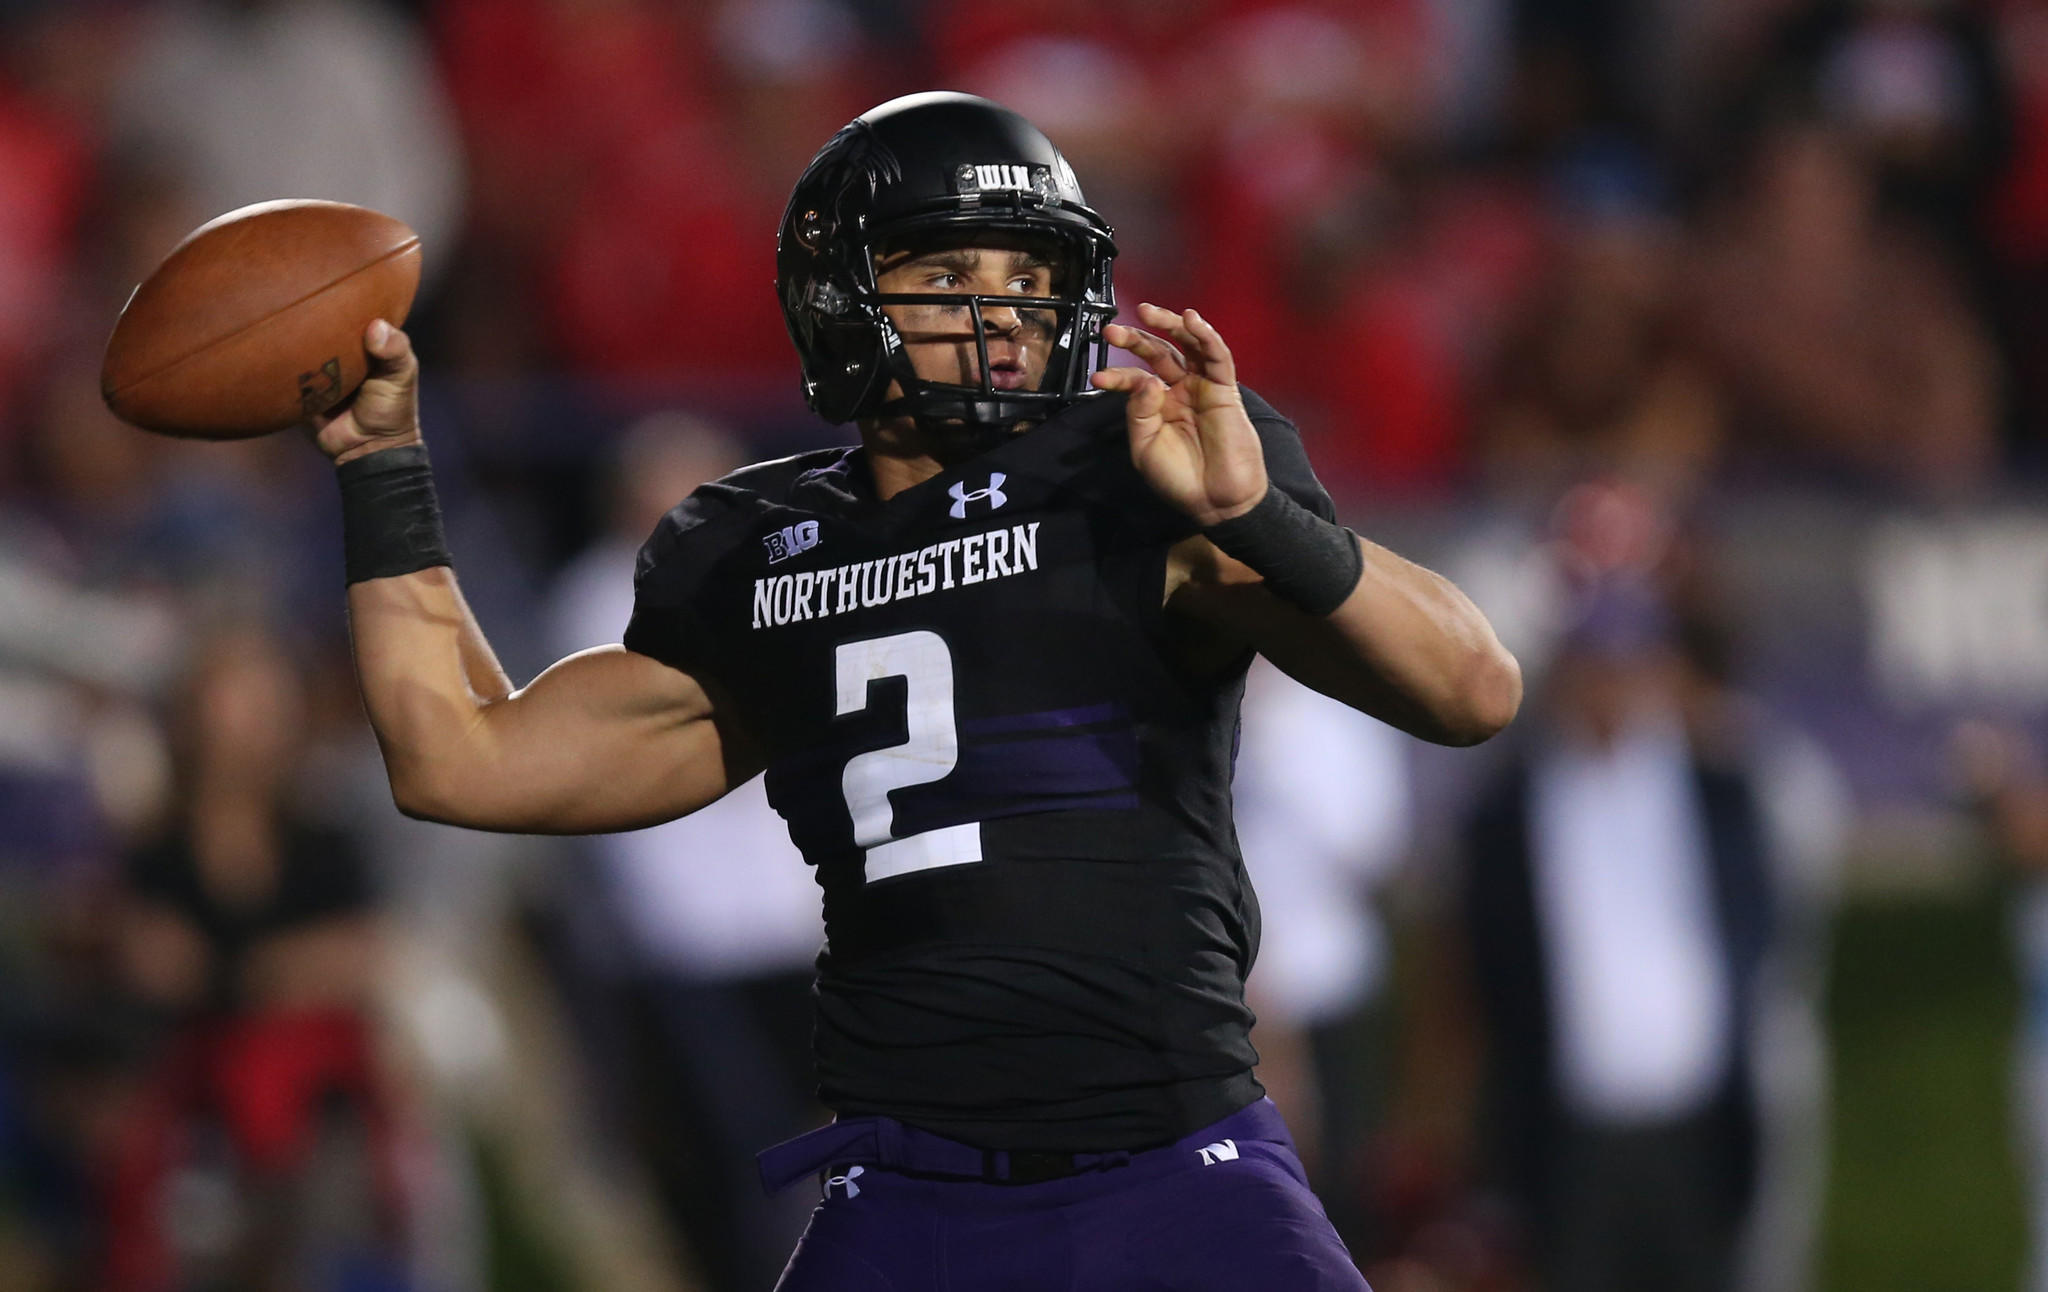 Northwestern quarterback Kain Colter throws a pass in the third quarter against Ohio State at Ryan Field.